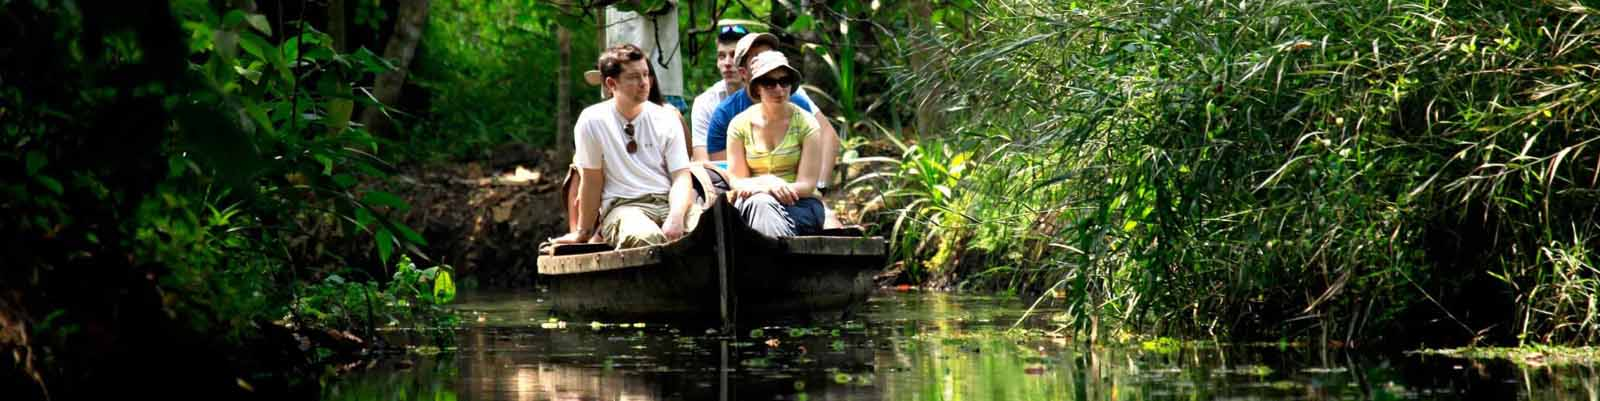 kerala tour and honeymoon packages from Erode